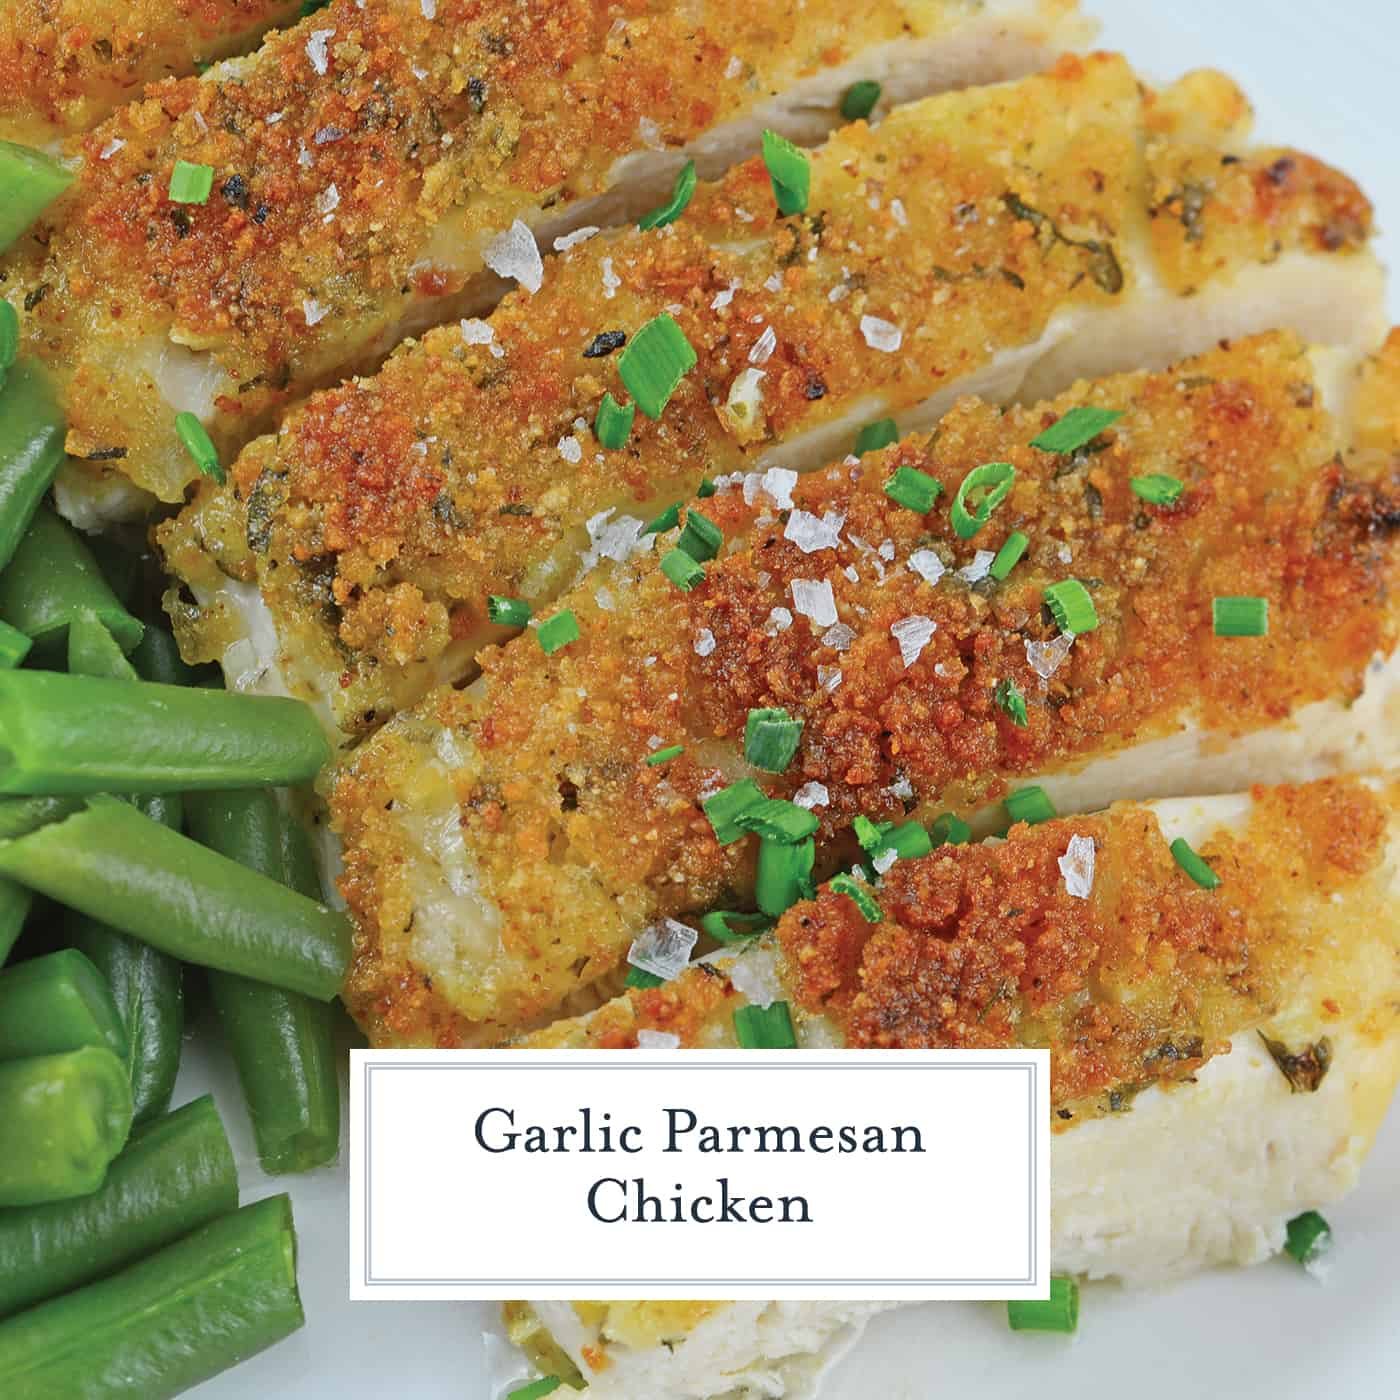 Garlic Parmesan Chicken is an easy weeknight meal option that everyone will love! Only 6 ingredients and your easy chicken recipe is ready to serve! #garlicparmesanchicken #bakedbreadedchicken #breadcrumbchicken www.savoryexperiments.com